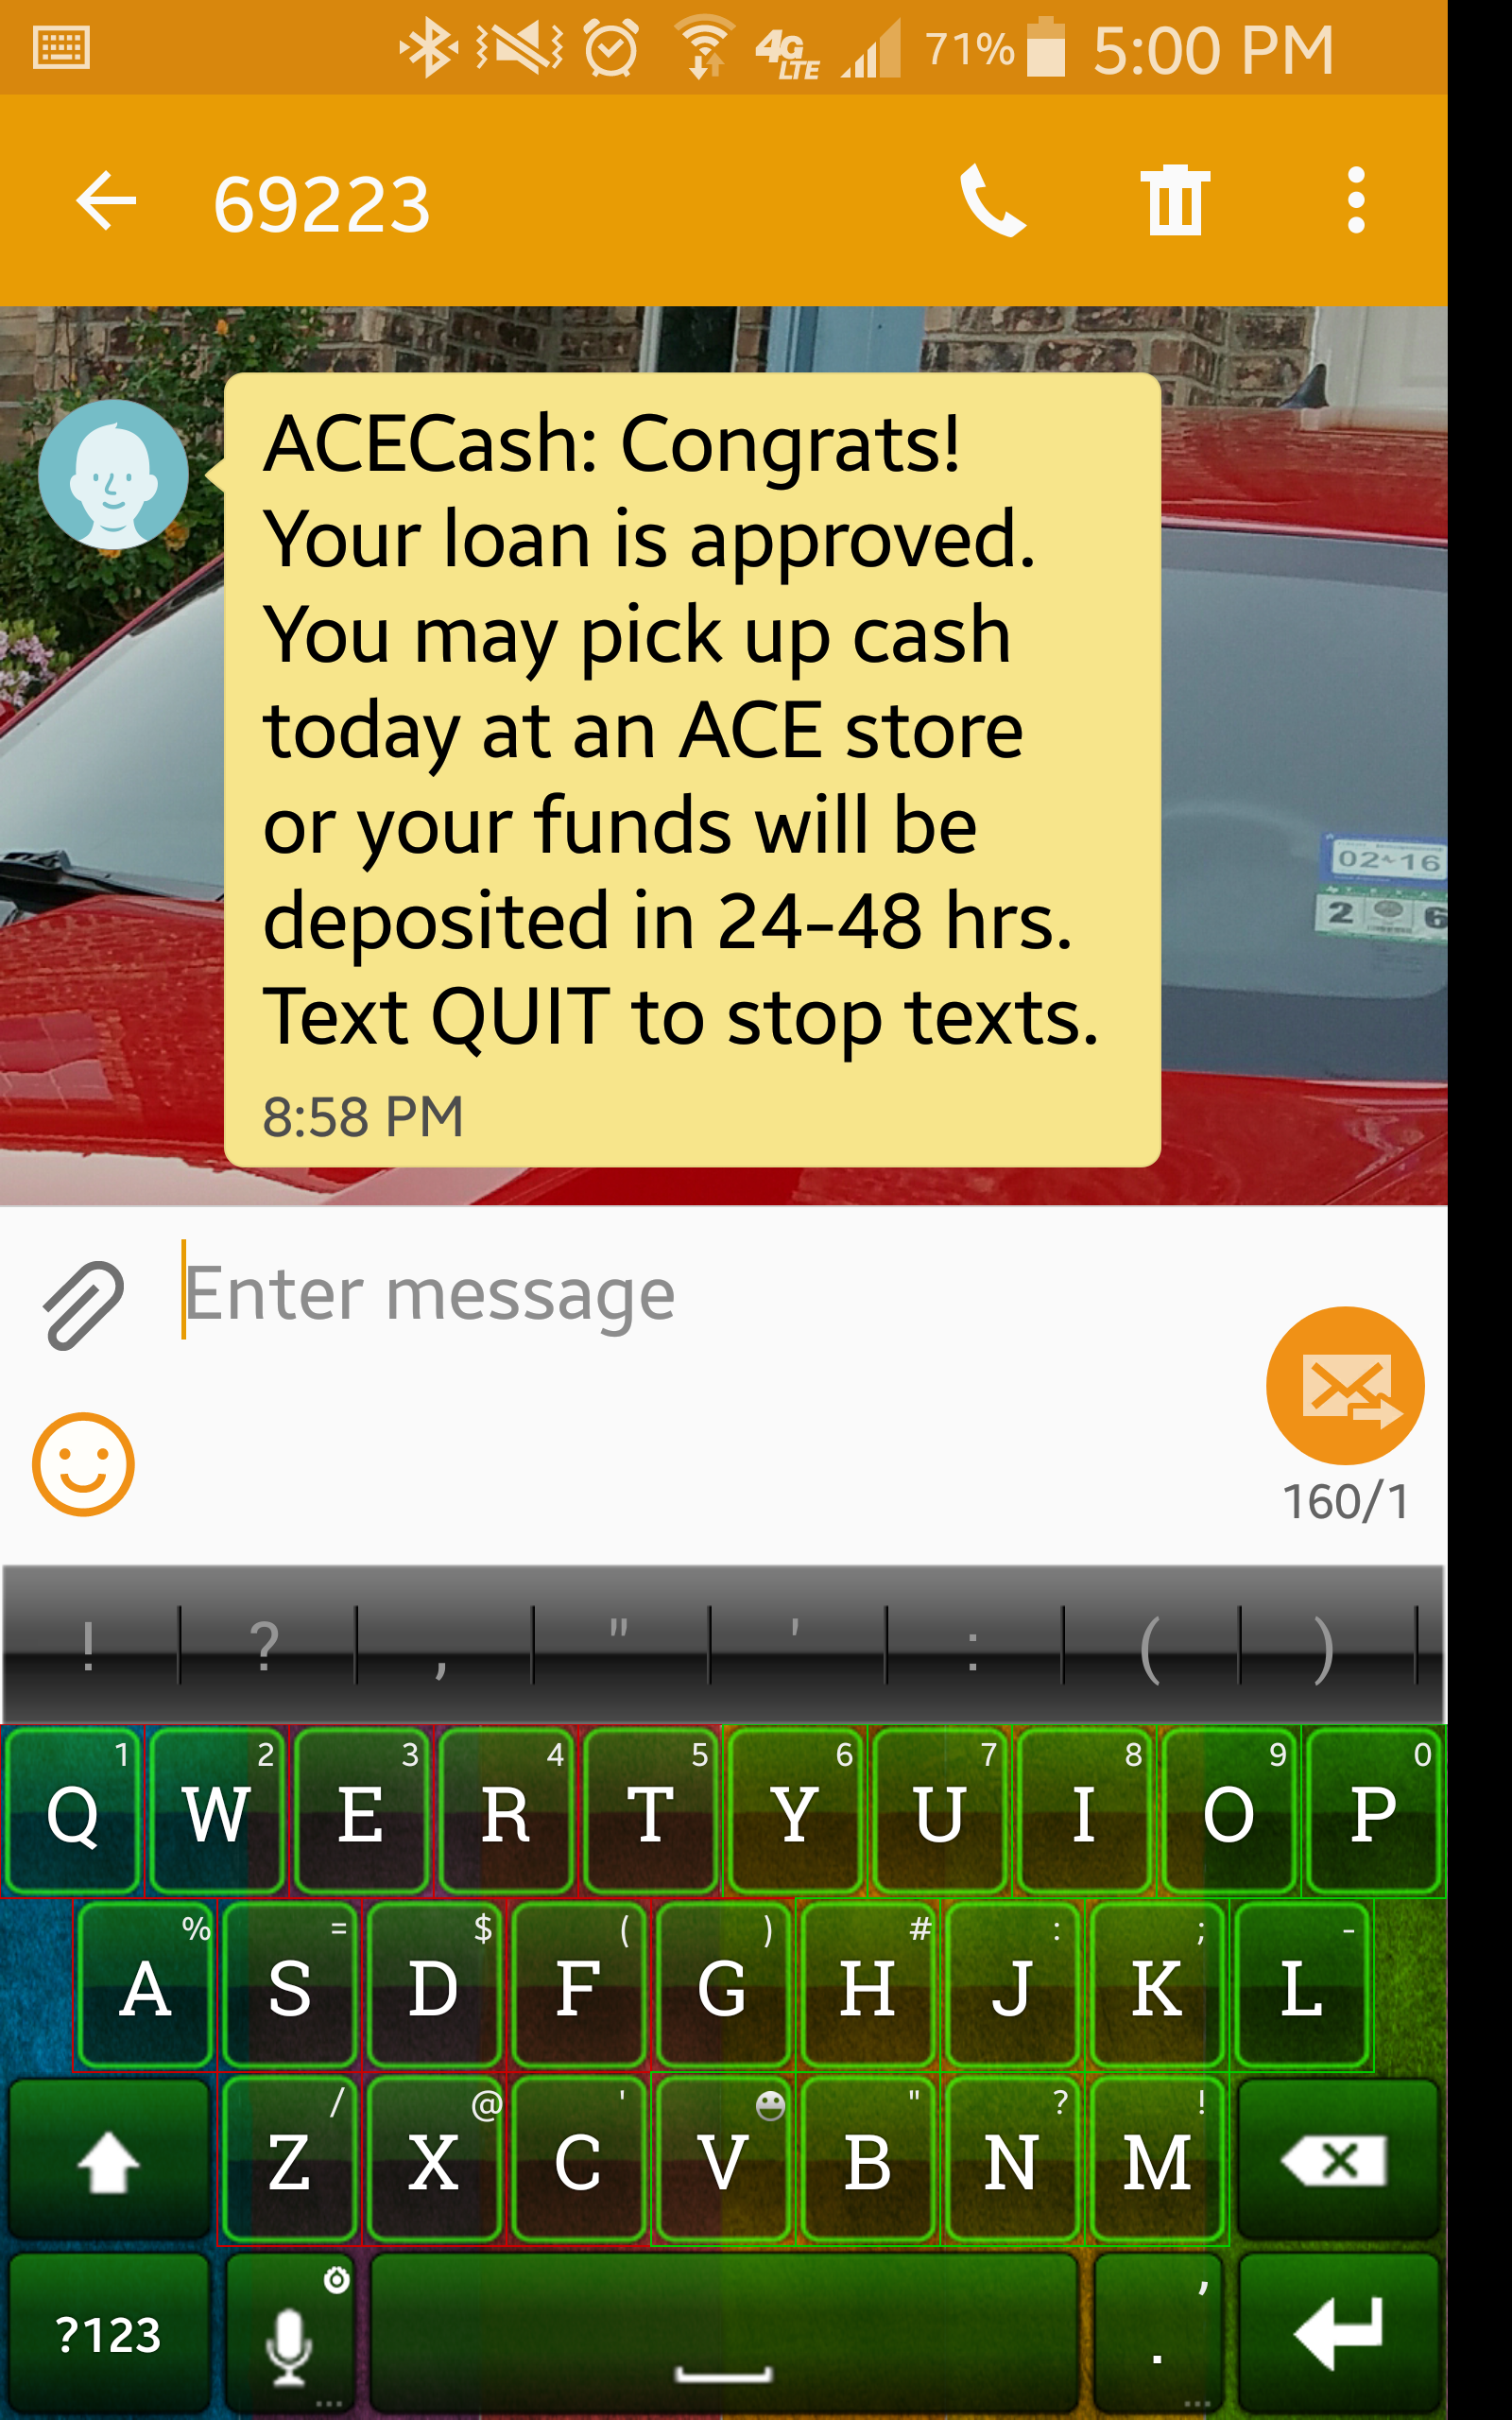 Does anyone know of a place where you can get a small loan like $600.00 really fast.?